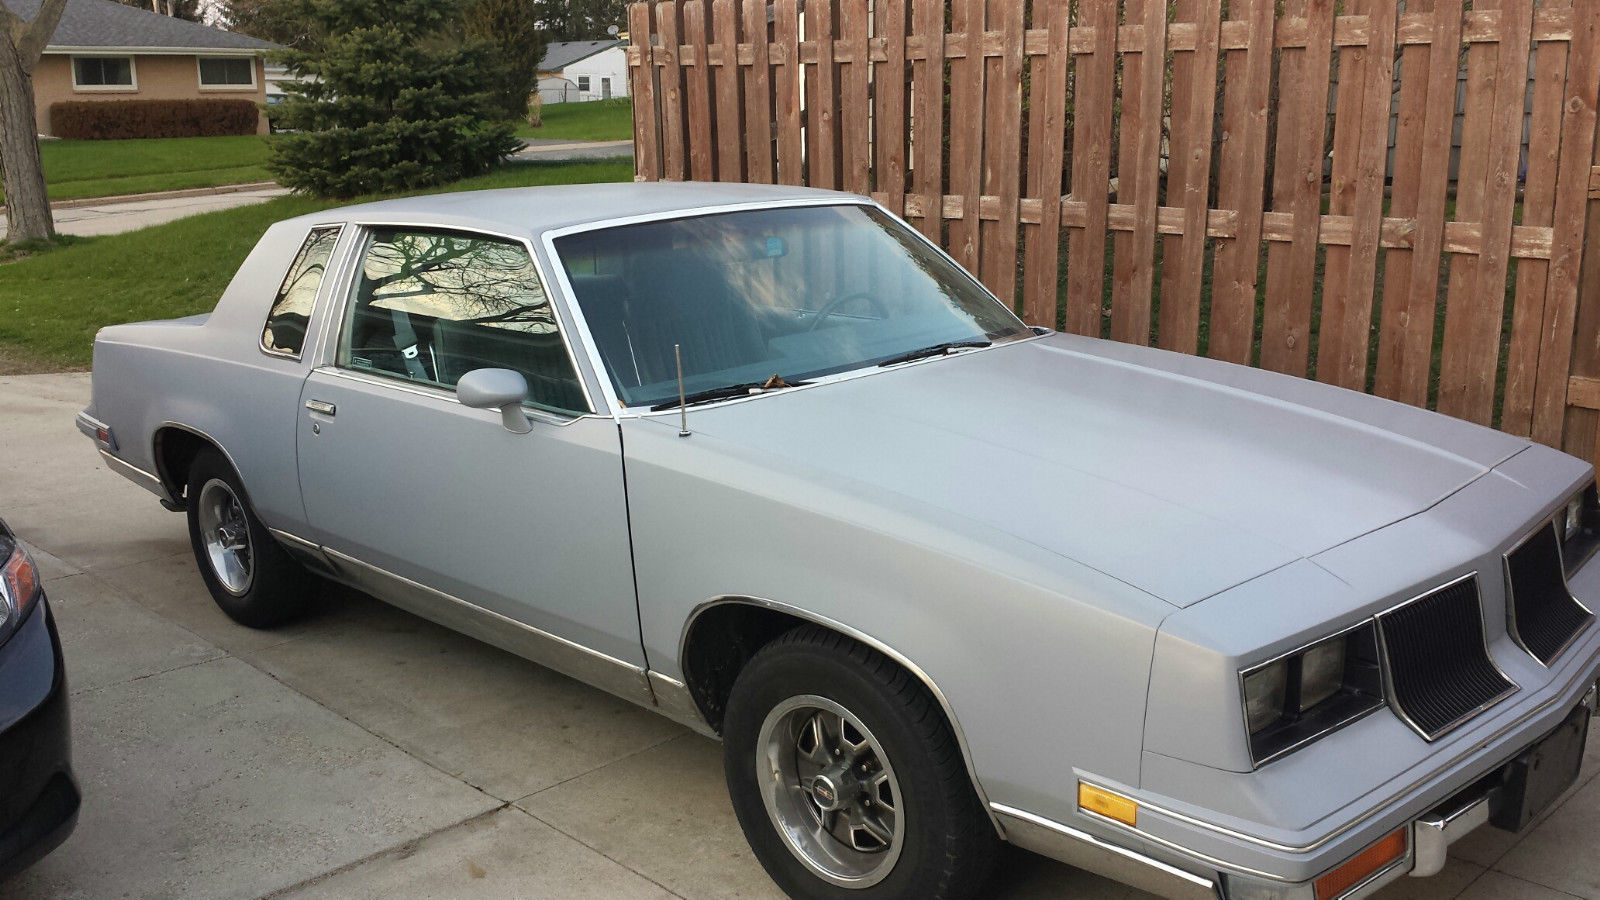 1986 oldsmobile cutlass salon base coupe 2 door 5 0l for 1986 oldsmobile cutlass salon